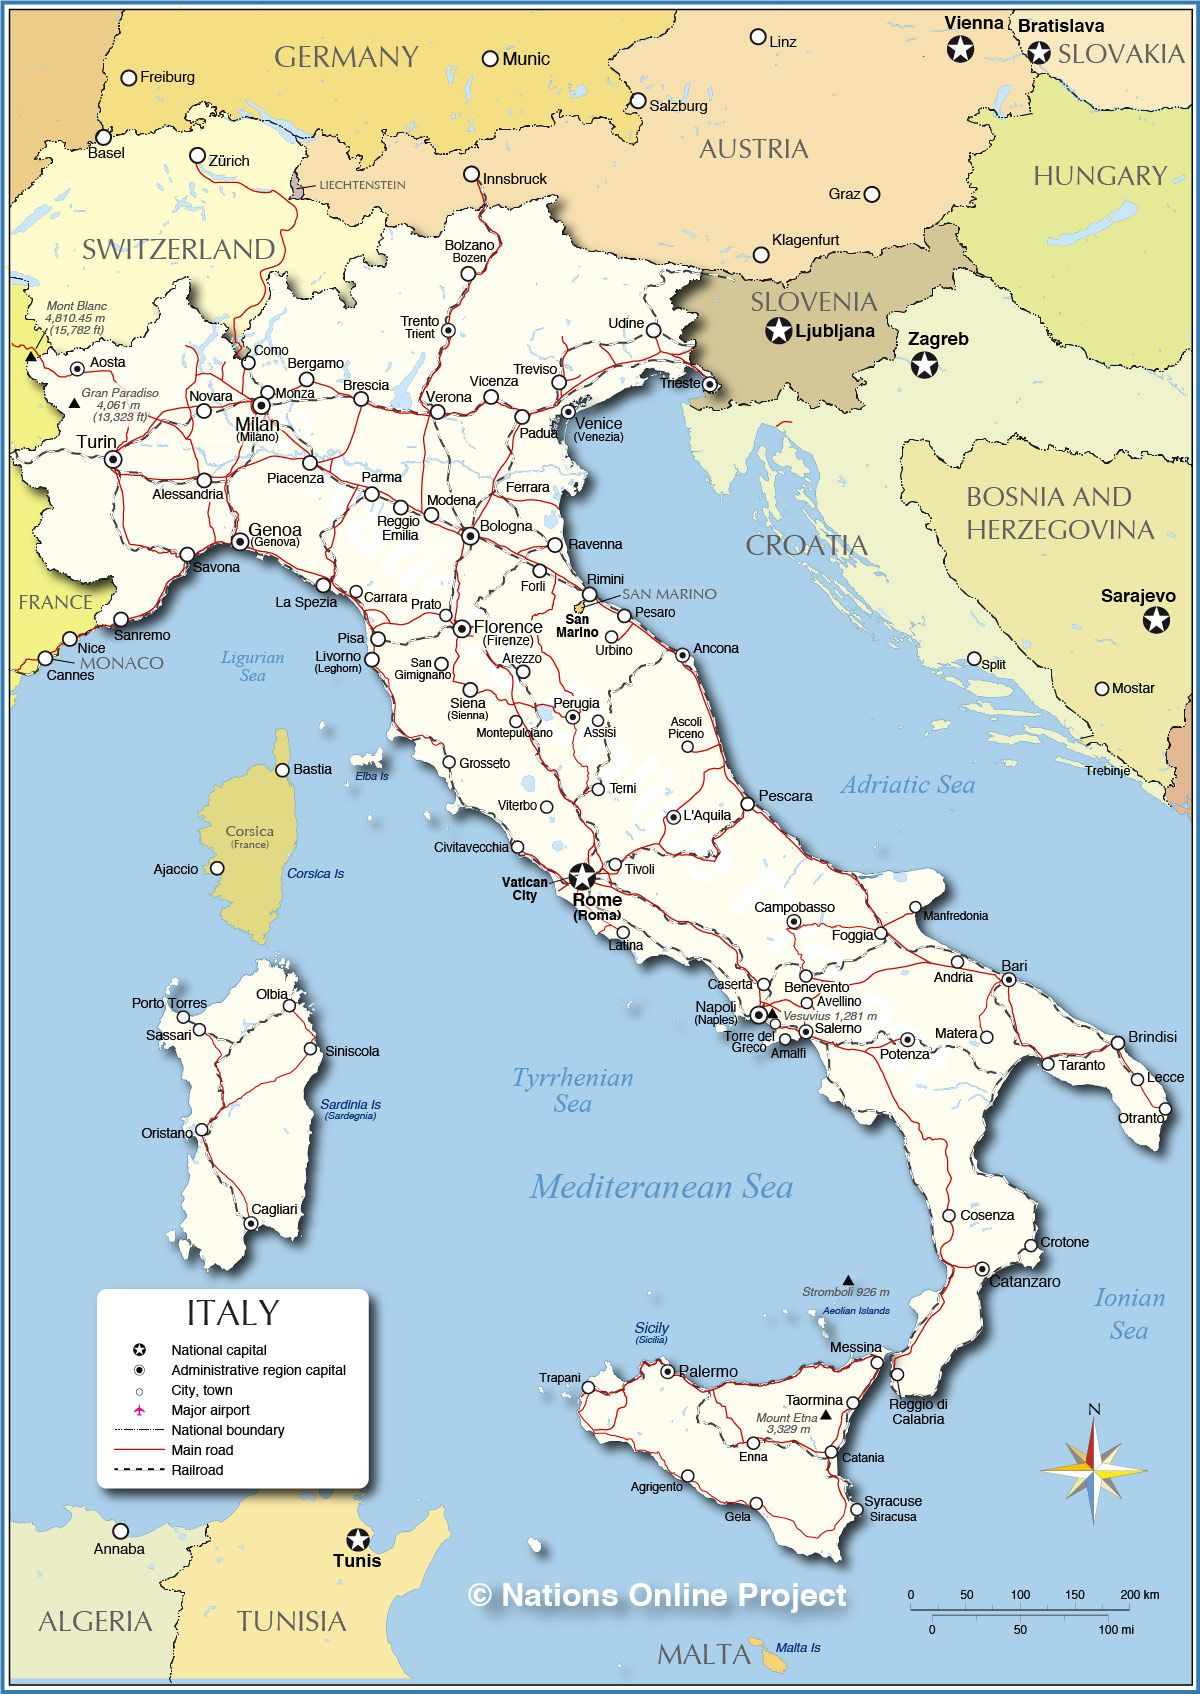 Detailed Map of Italy Italy on My Mind Pinterest Italy